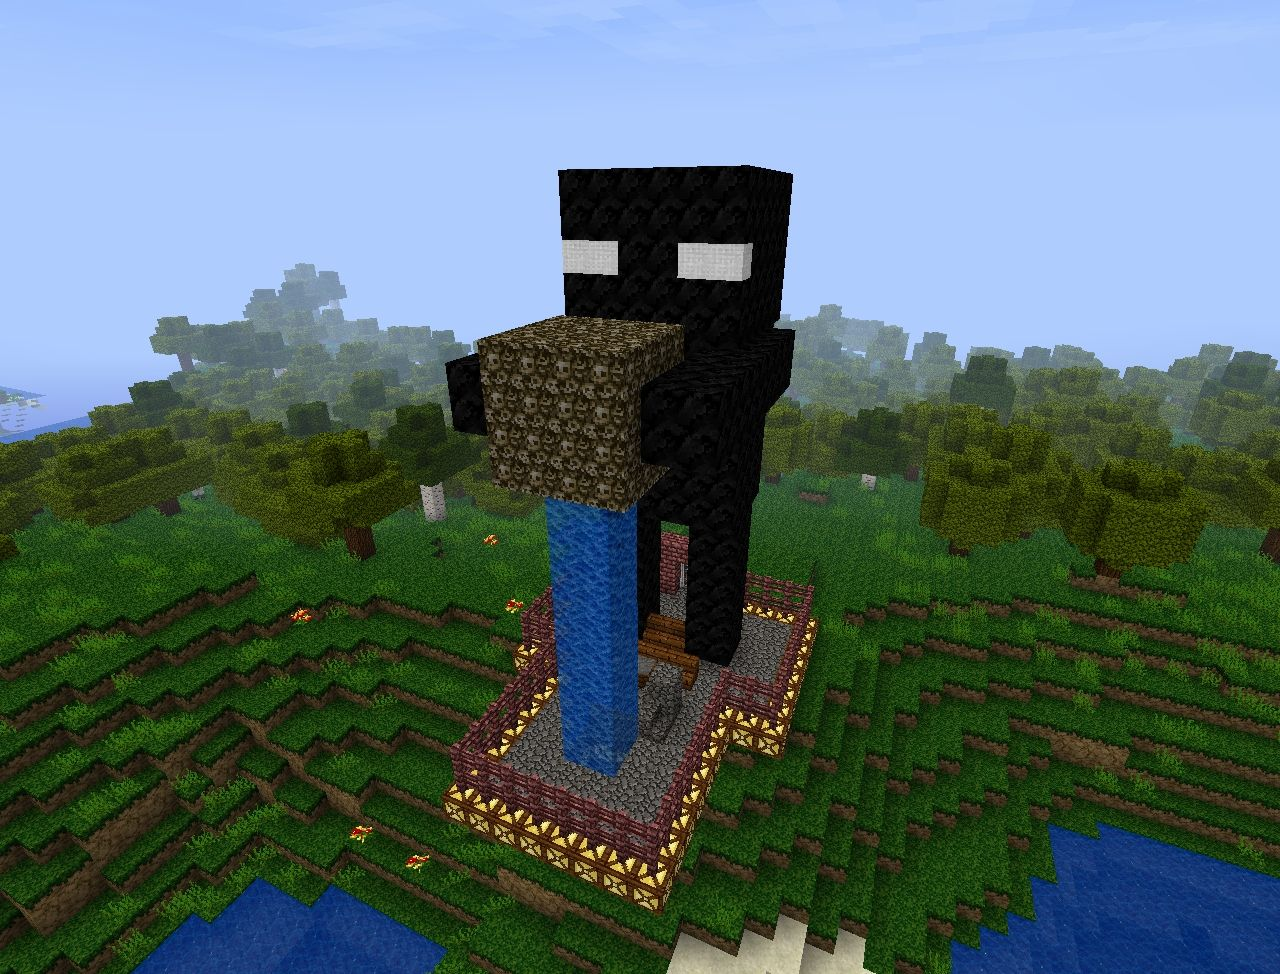 Minecraft Wallpaper Enderdragon Cute The Battle Of The Ender Dragon Dxd Adventure Map